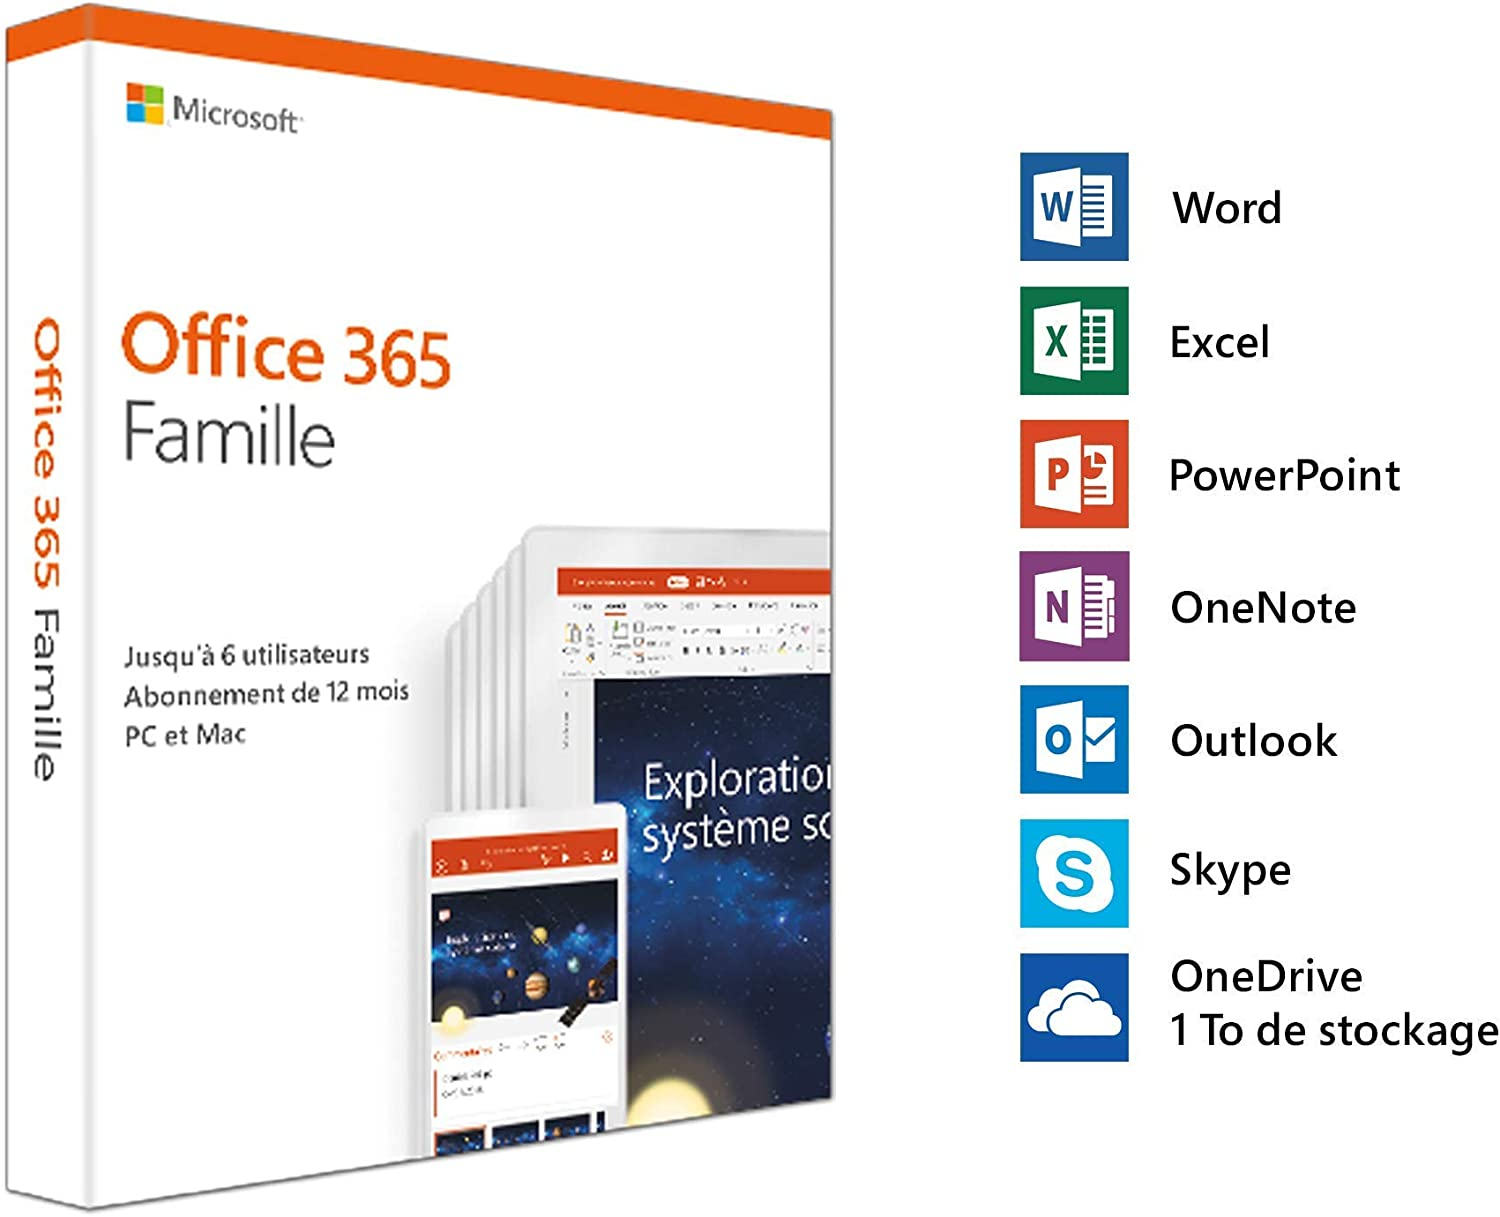 MICROSOFT Office 365 Home: Amazon.es: Electrónica